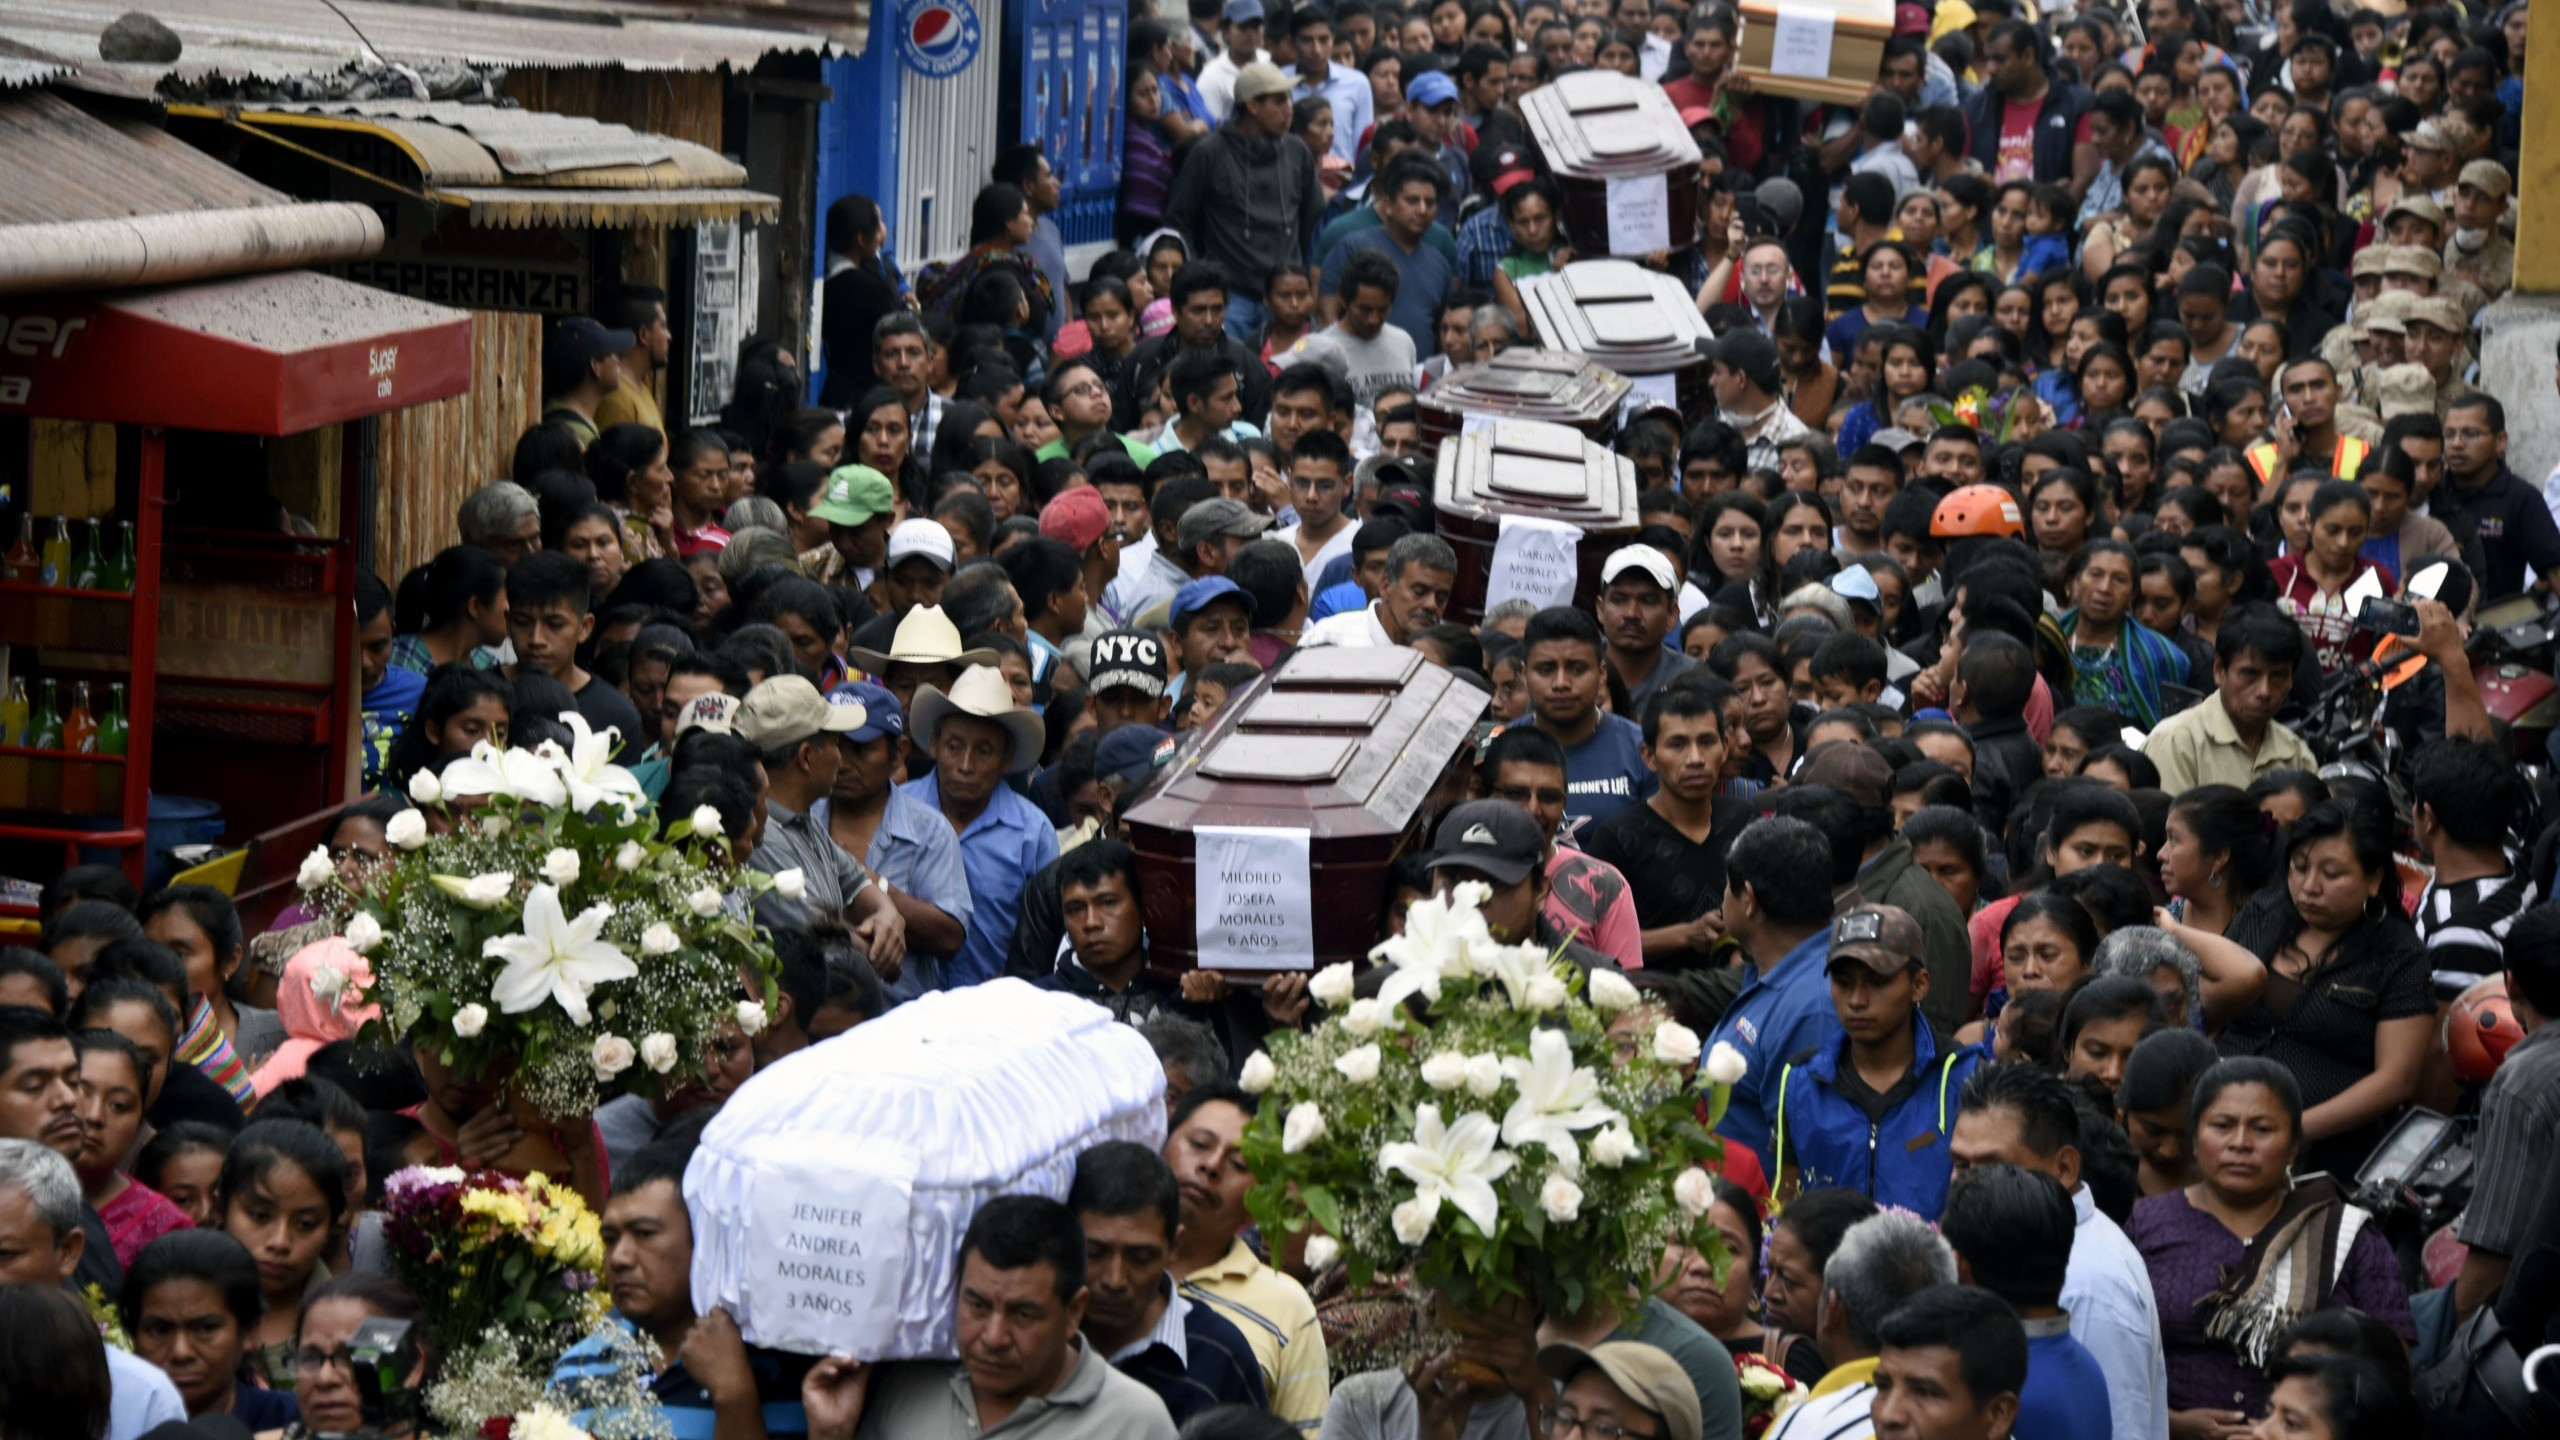 Residents carry the coffins of seven people who died following the eruption of the Fuego volcano, along the streets of Alotenango municipality, Sacatepequez, about 65 km southwest of Guatemala City, on June 4, 2018. (Credit: JOHAN ORDONEZ/AFP/Getty Images)